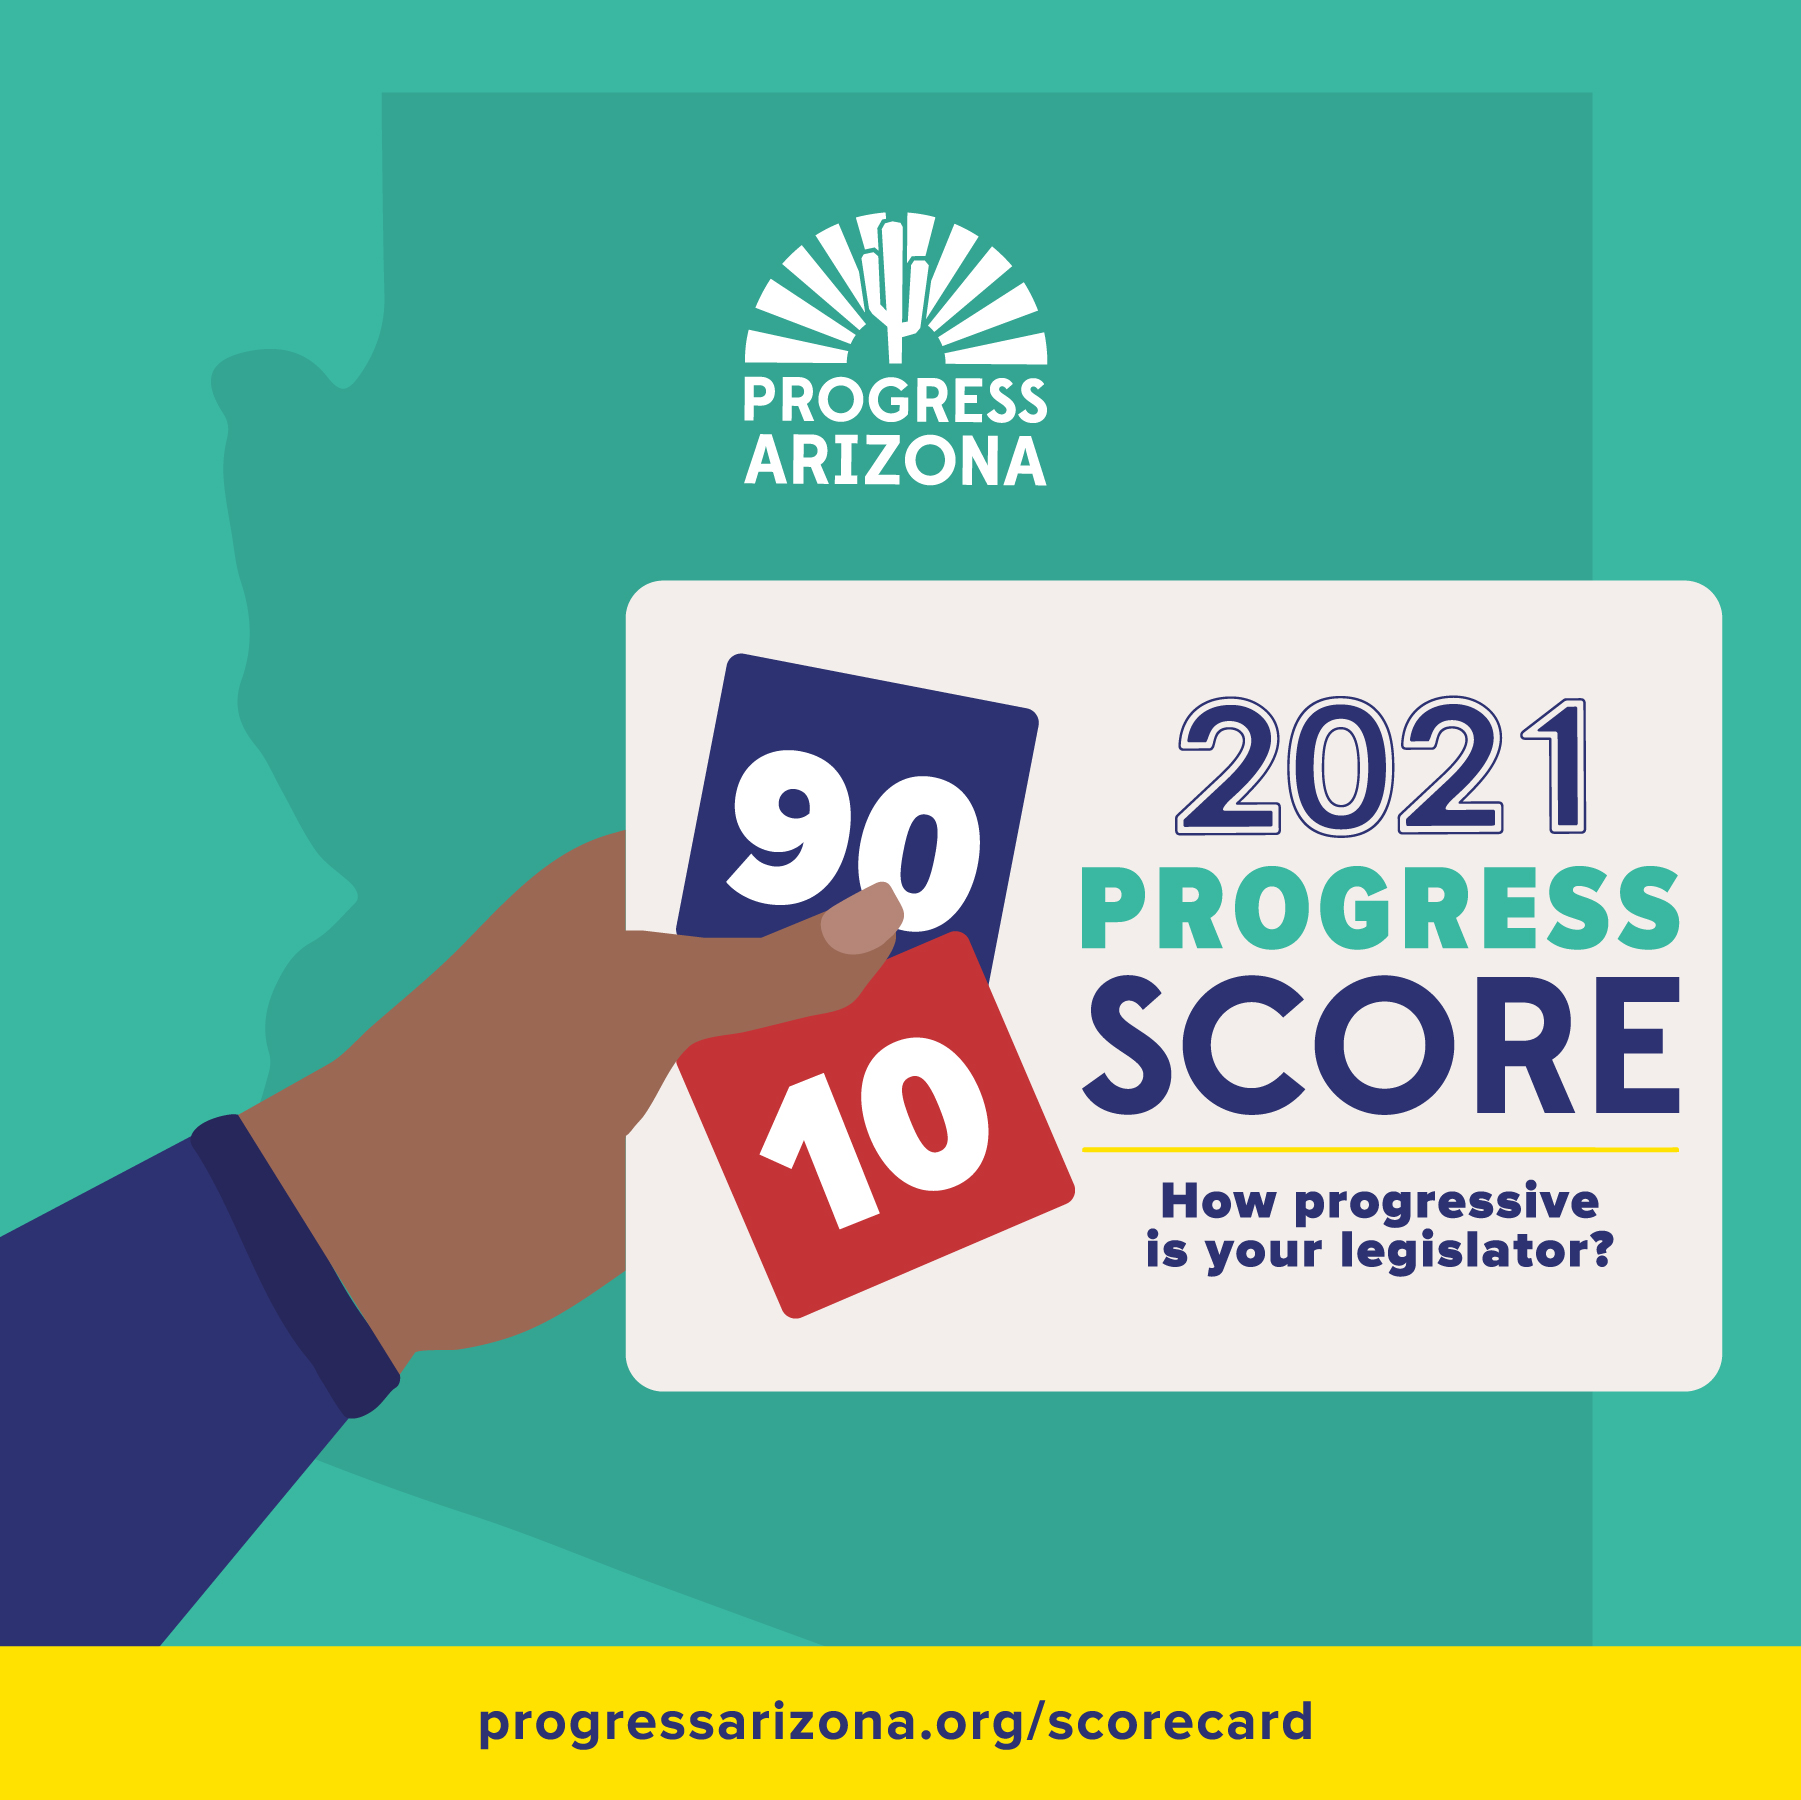 Teal outline of the shape of Arizona with a hand holding a paper that reads 2021 Progress Score, how progressive is your legislator? Red block with the score of 10 and purple block with the score of 90. Yellow banner at the bottom reading ProgressArizona.org/Scorecard.